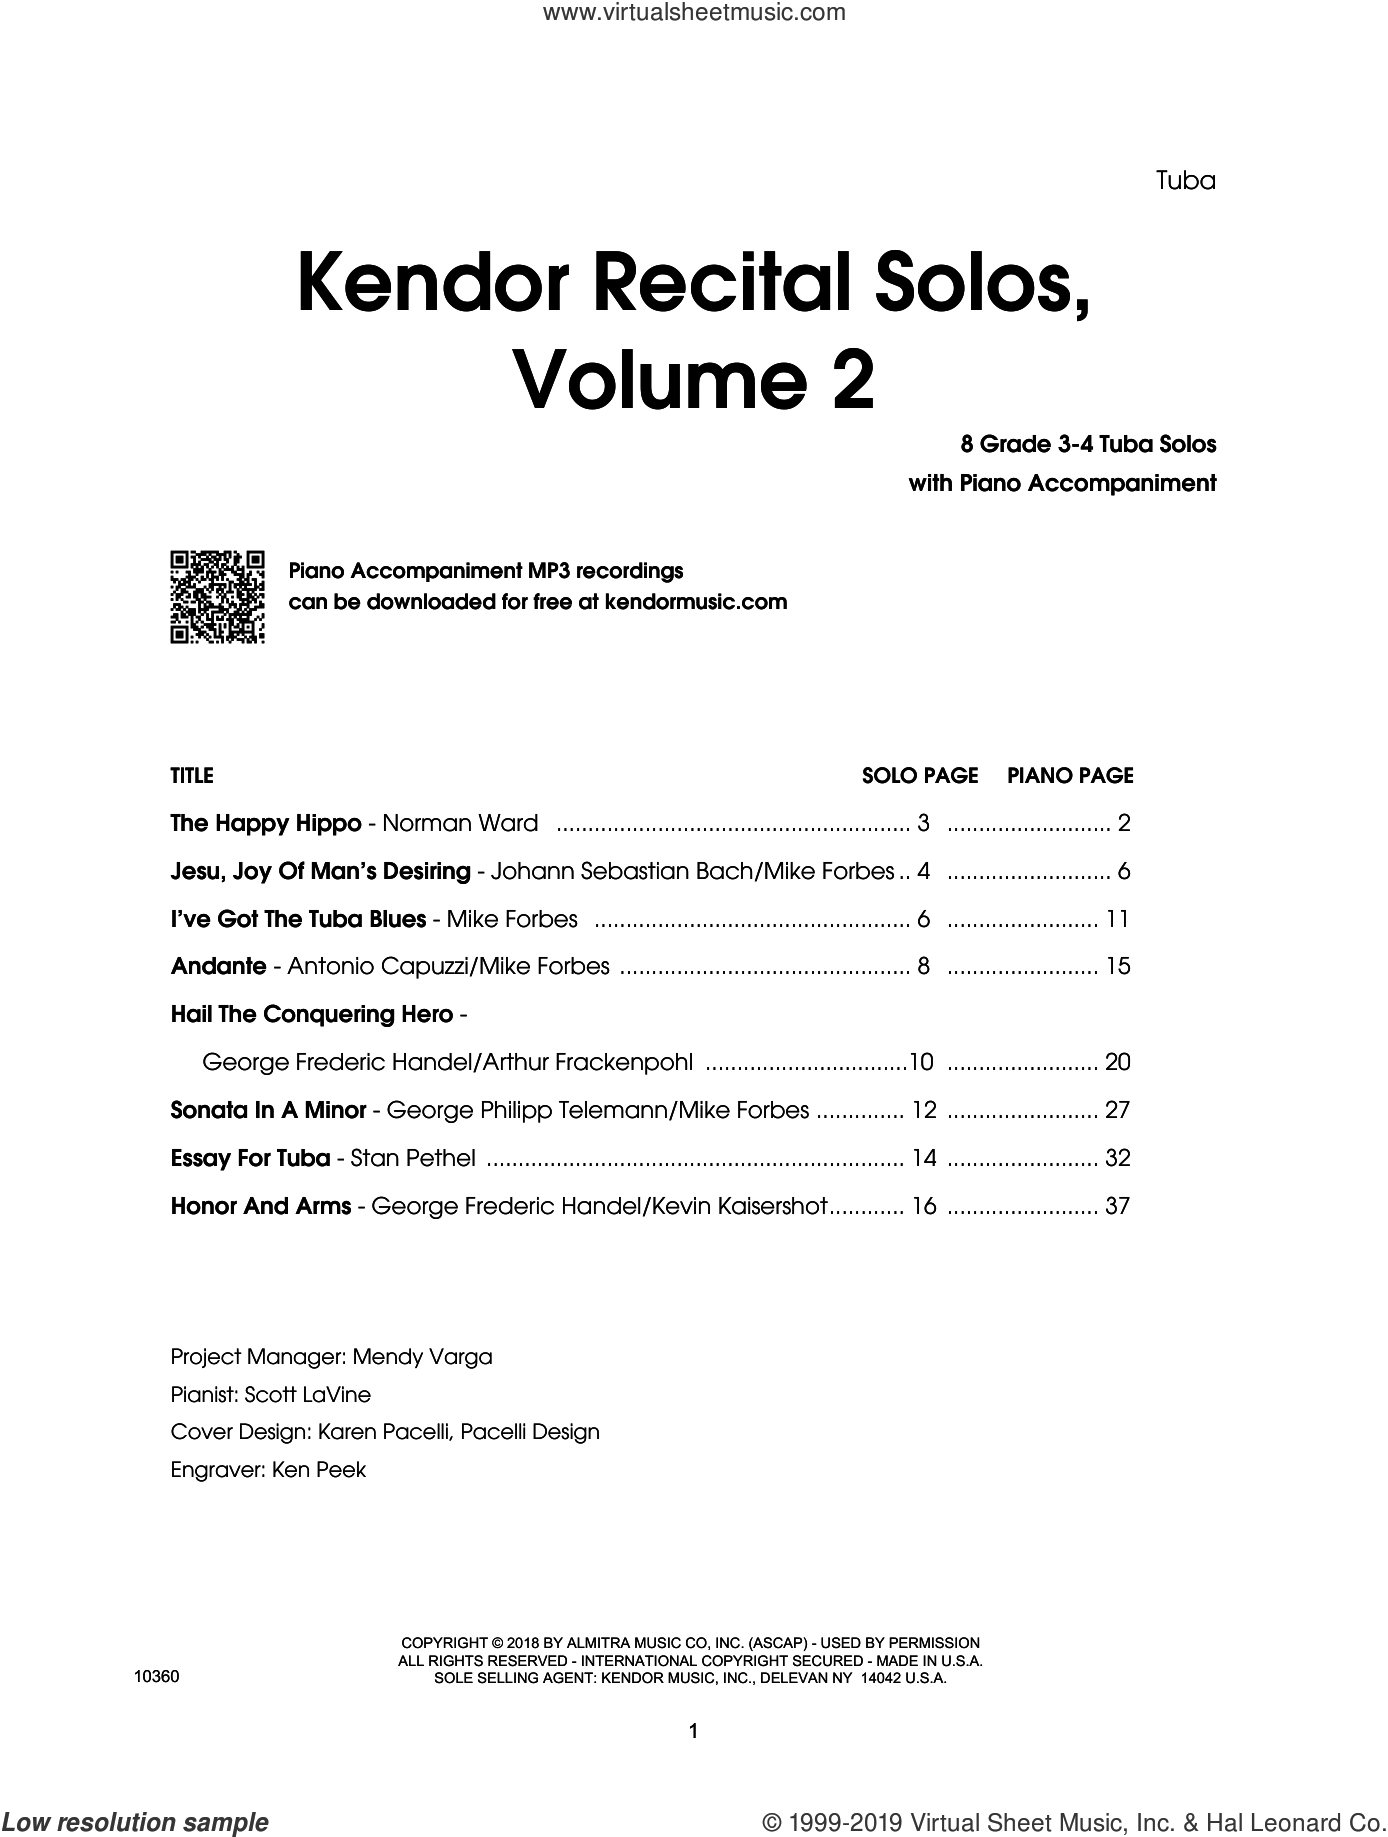 Kendor Recital Solos, Volume 2 - Tuba With Piano Accompaniment and MP3's (complete set of parts) sheet music for tuba and piano, intermediate skill level